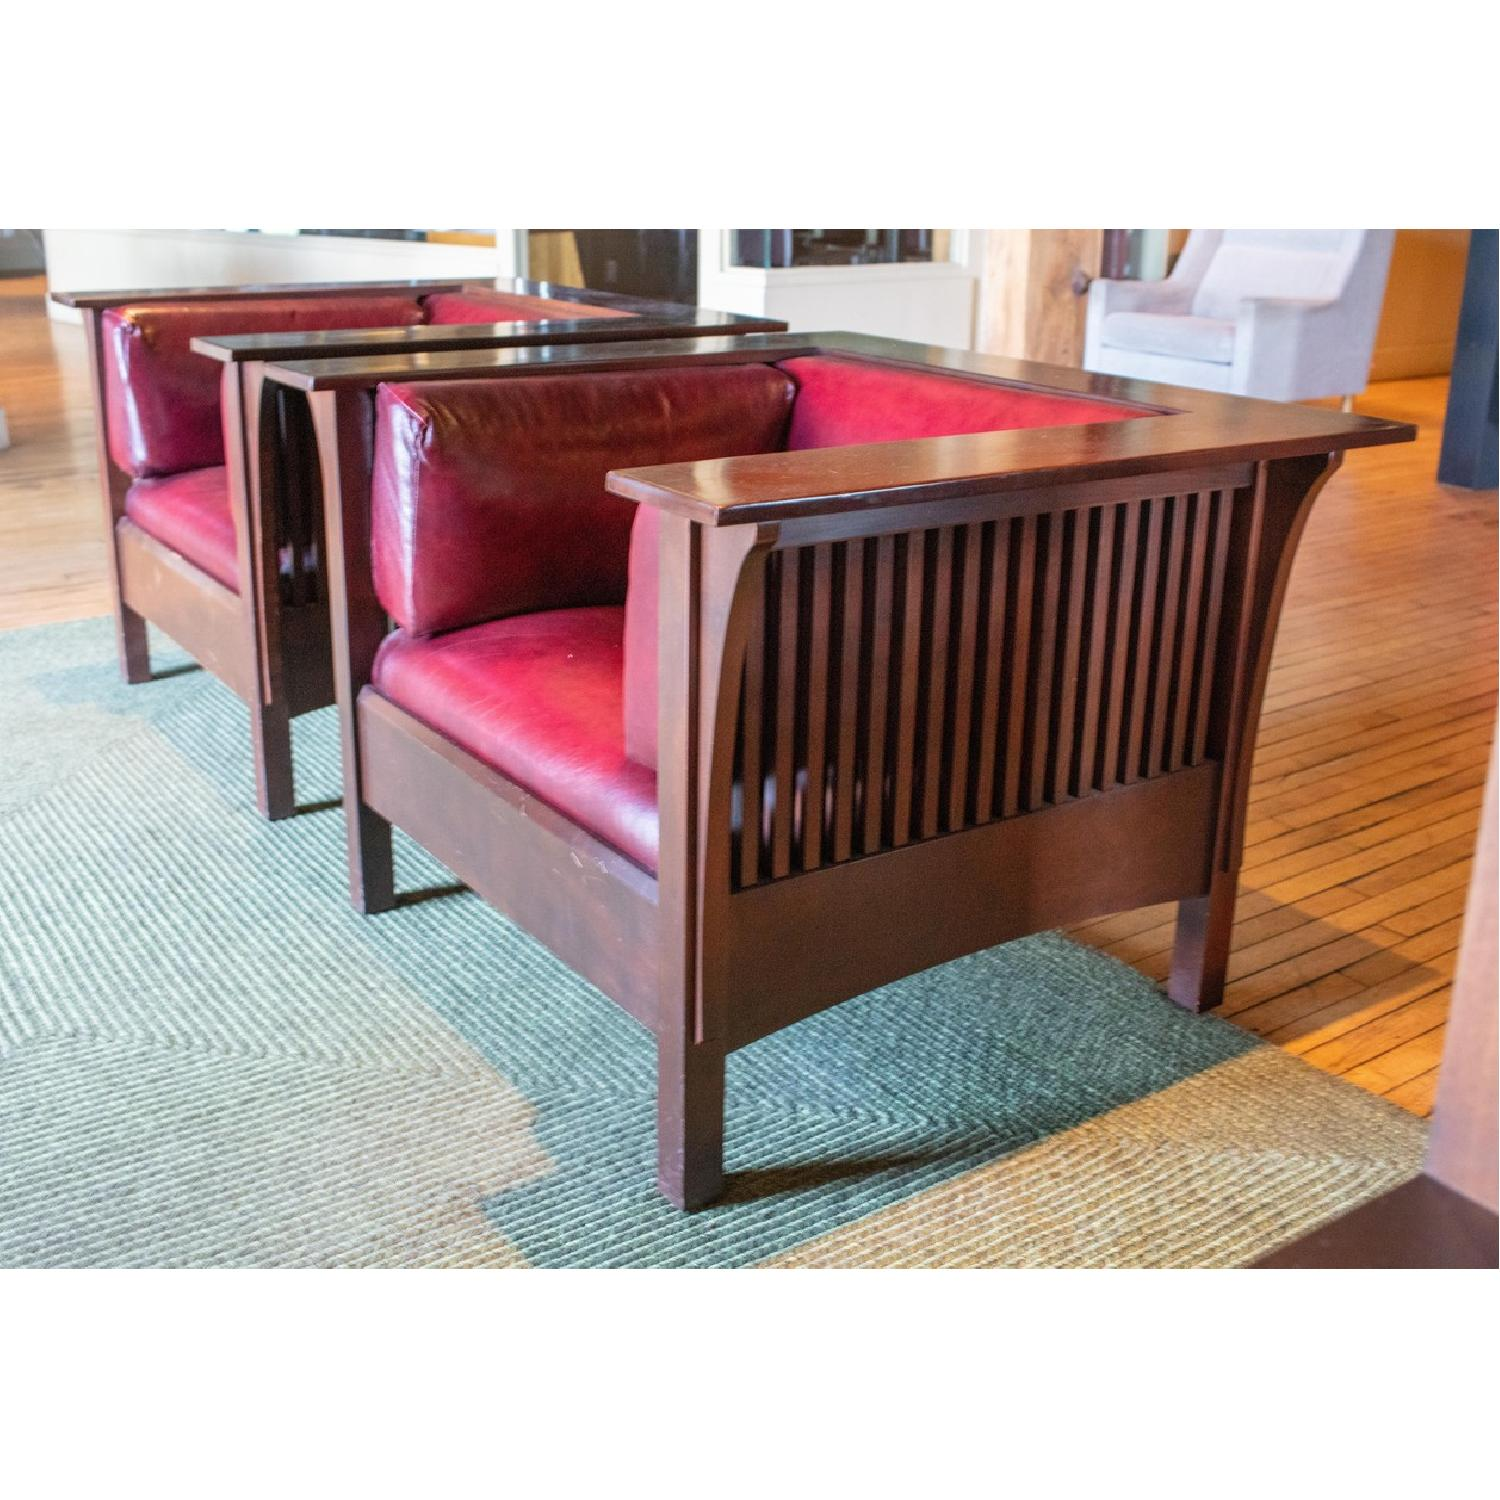 Stickley Prairie Spindle Chairs - image-5